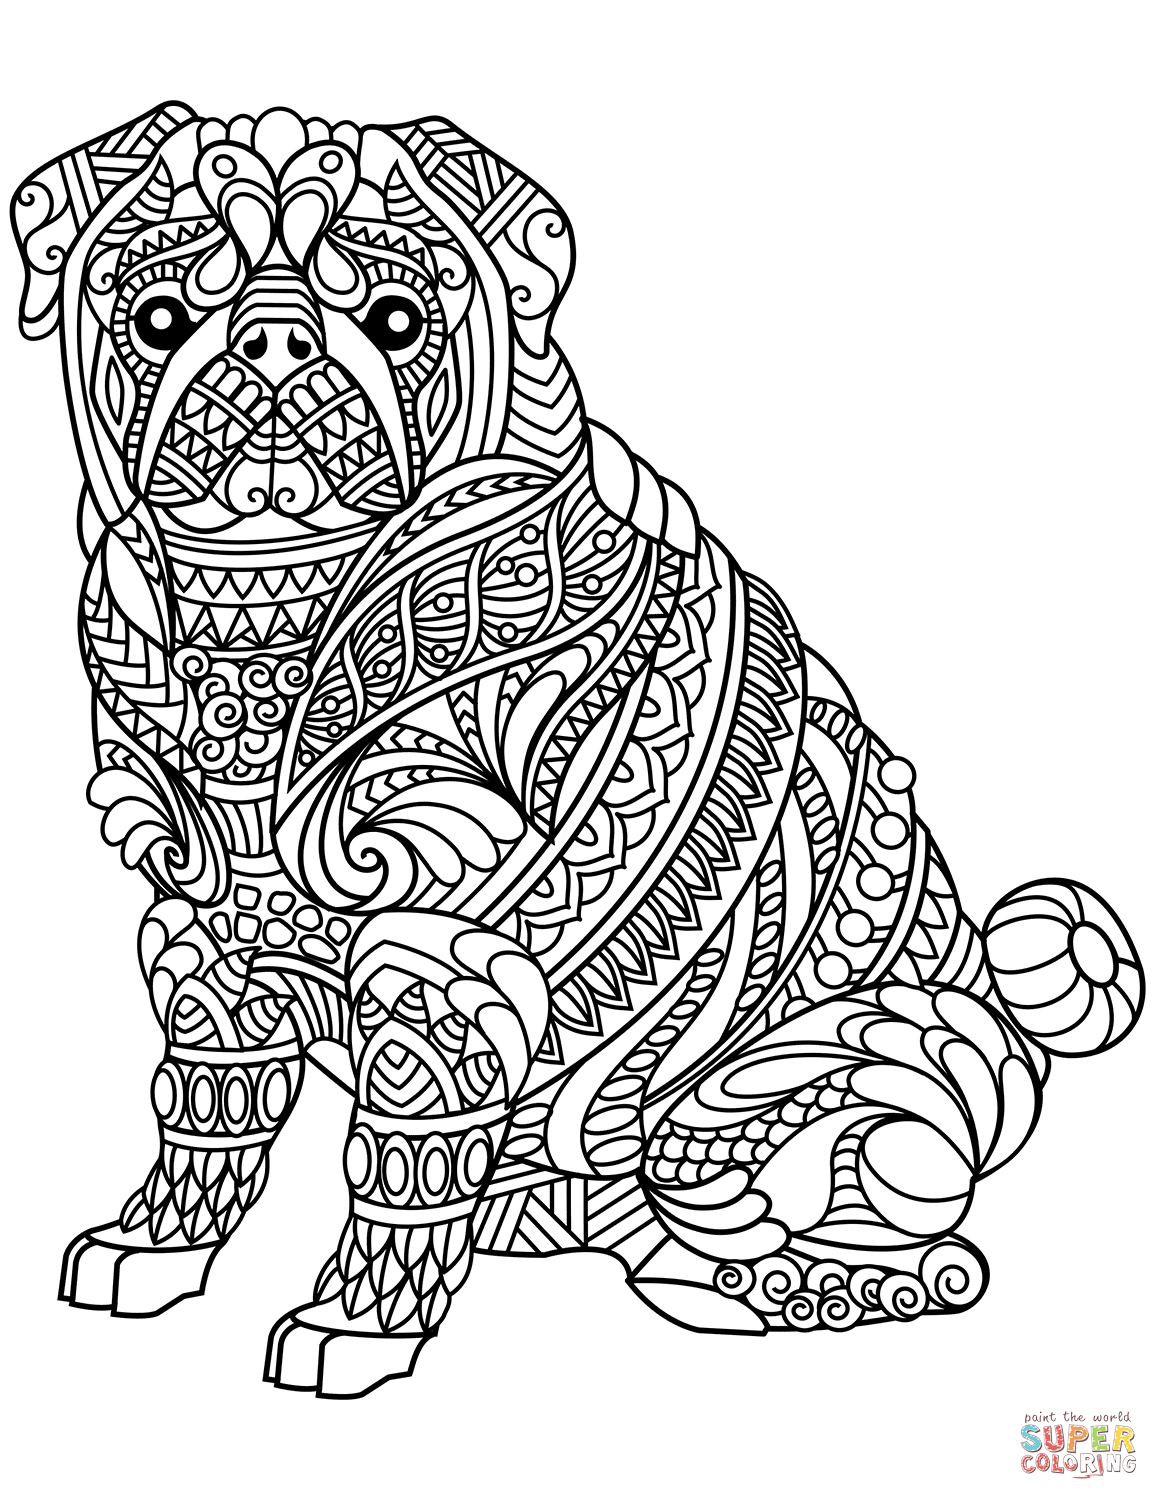 Pug Dog Zentangle Coloring Page